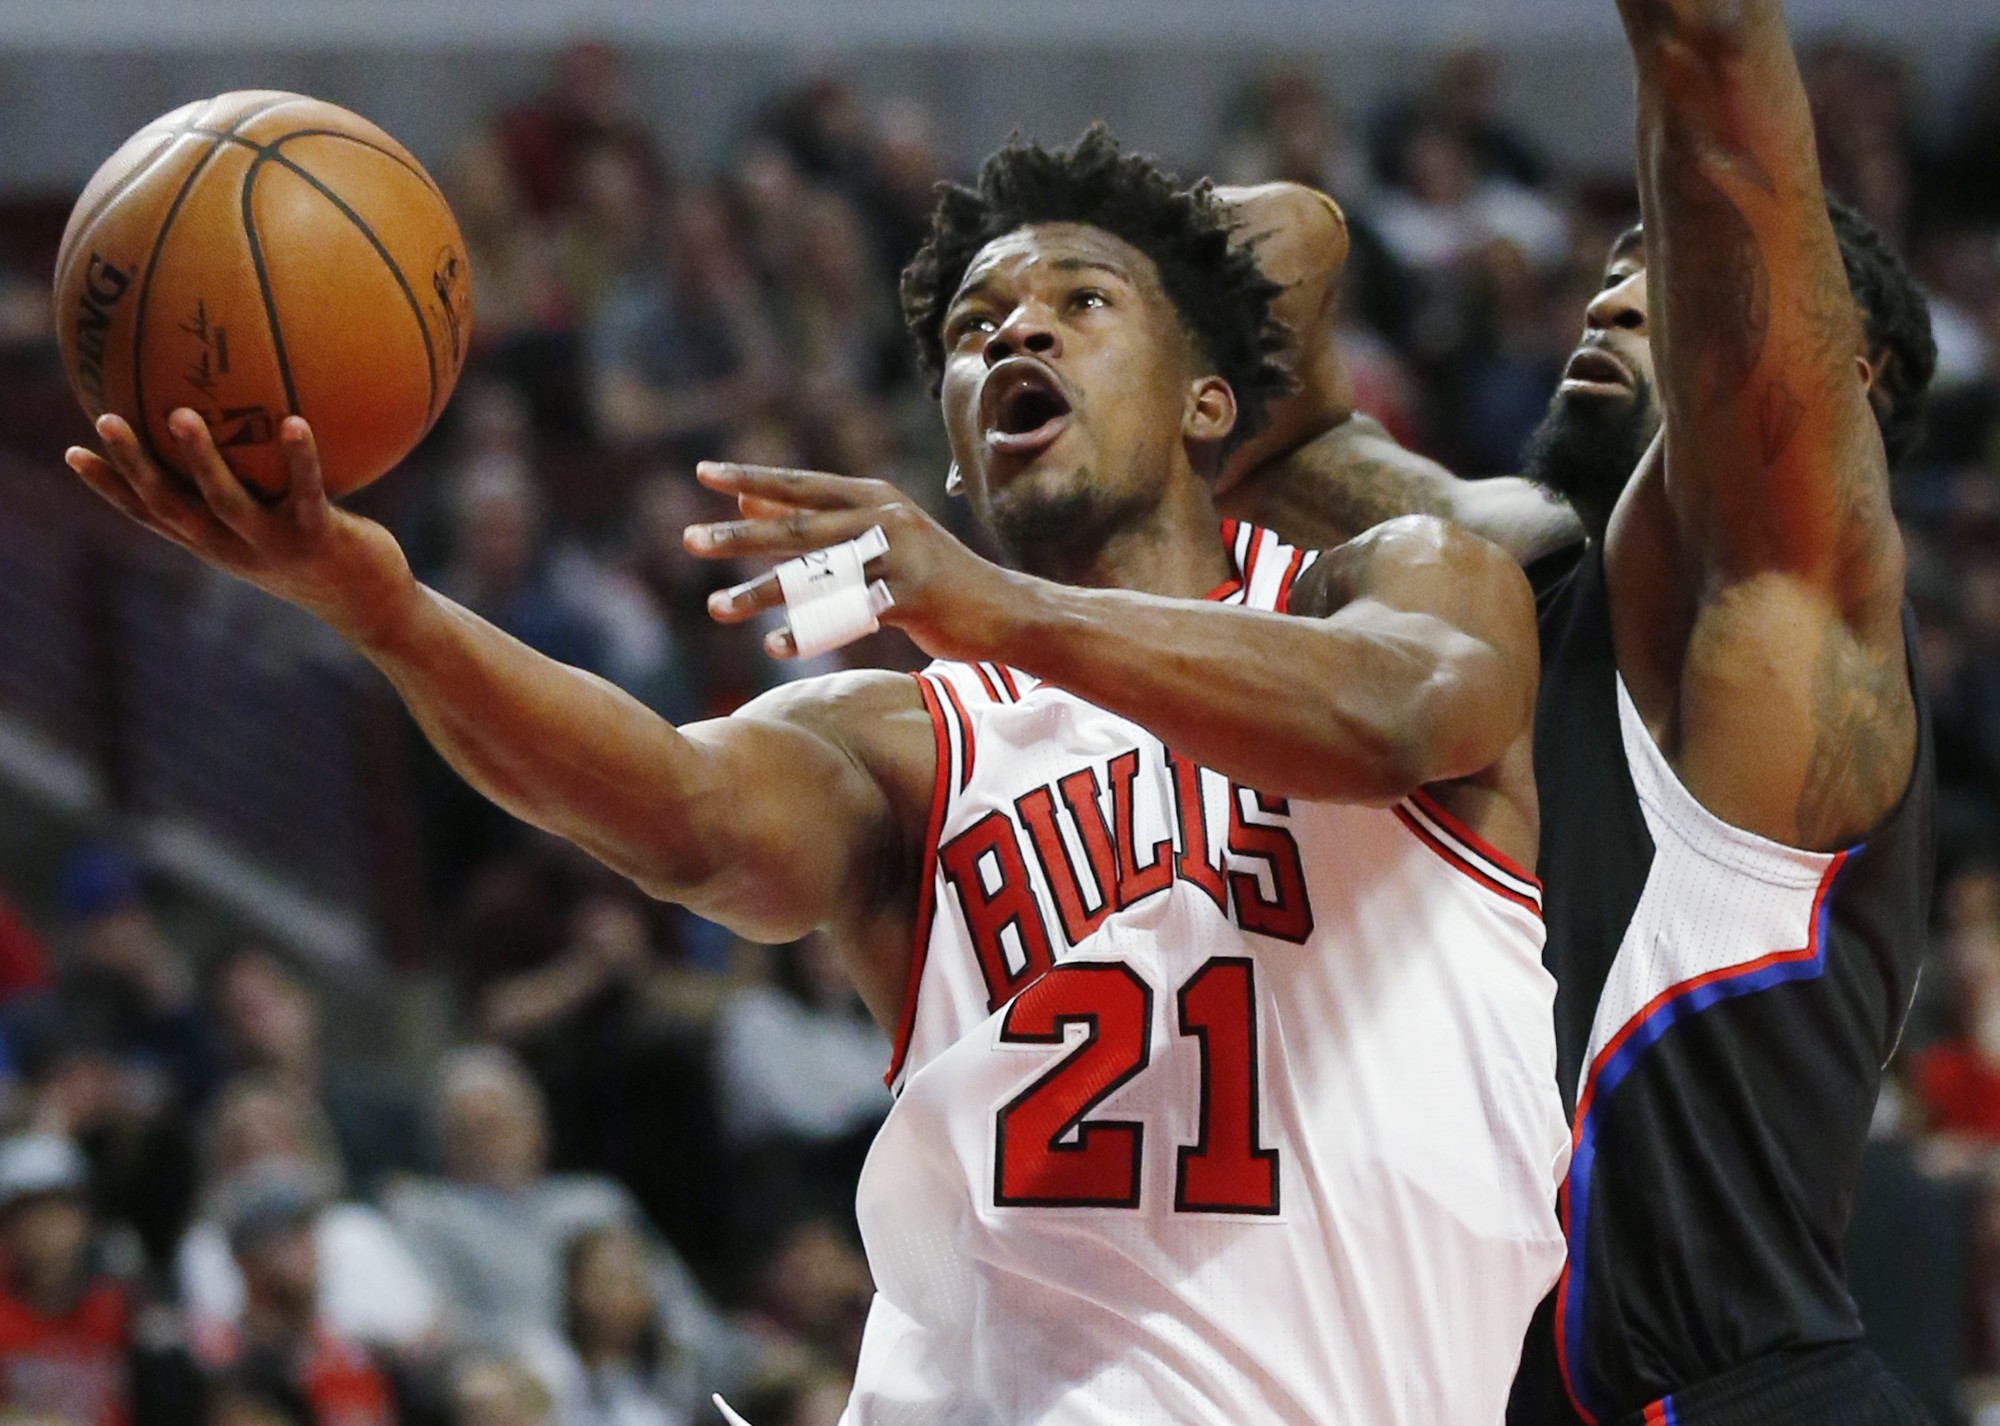 Bulls look to free Jimmy Butler for more scoring as they begin key stretch - Chicago Tribune